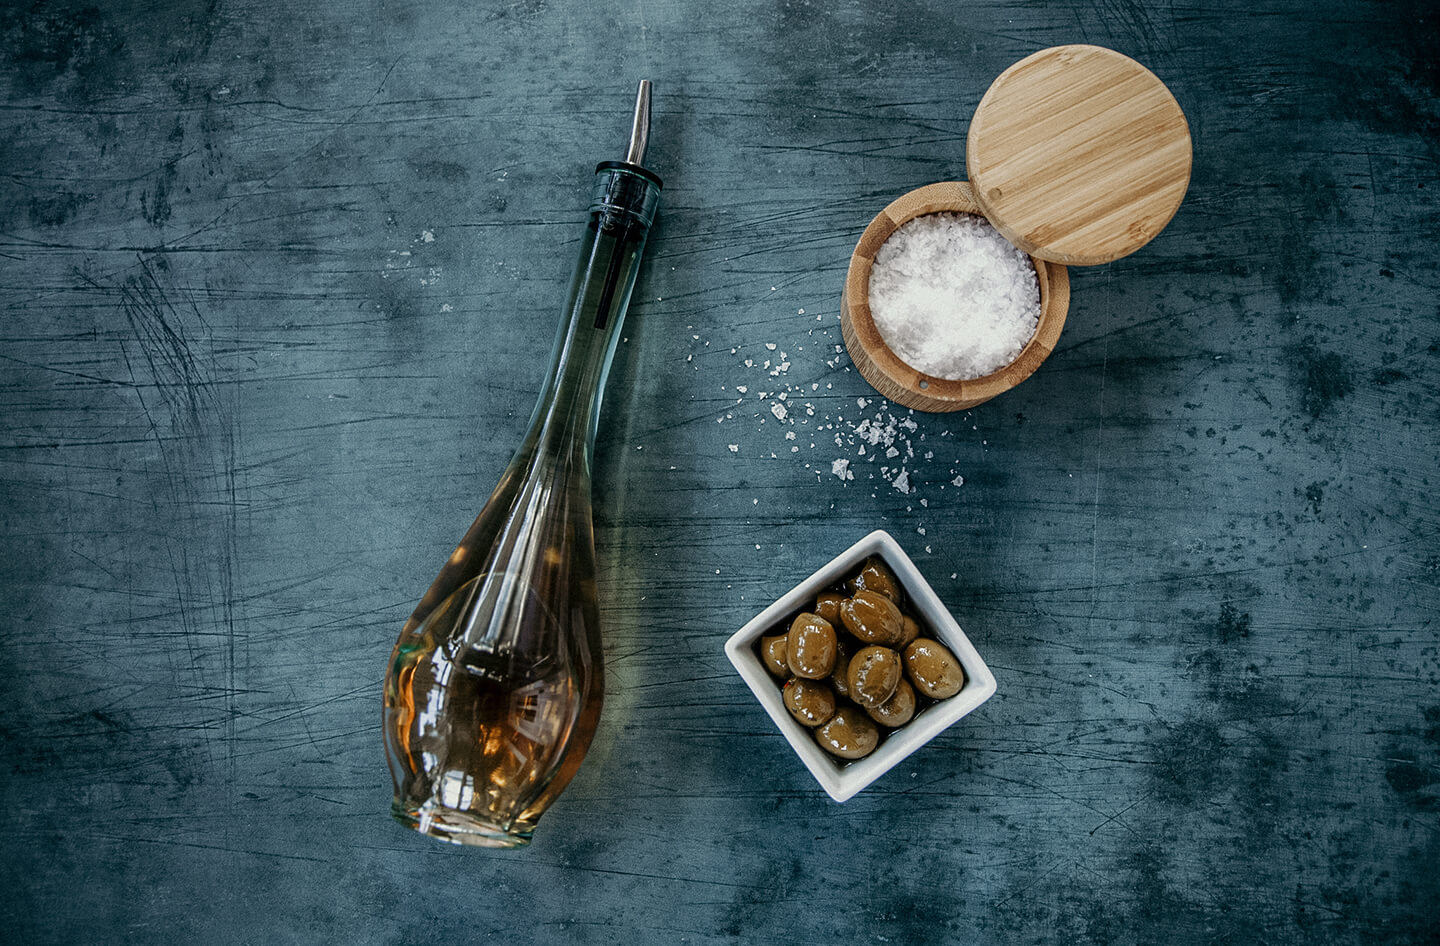 A bottle of vinegar, a dish of olives and a container of kosher salt resting on a table.